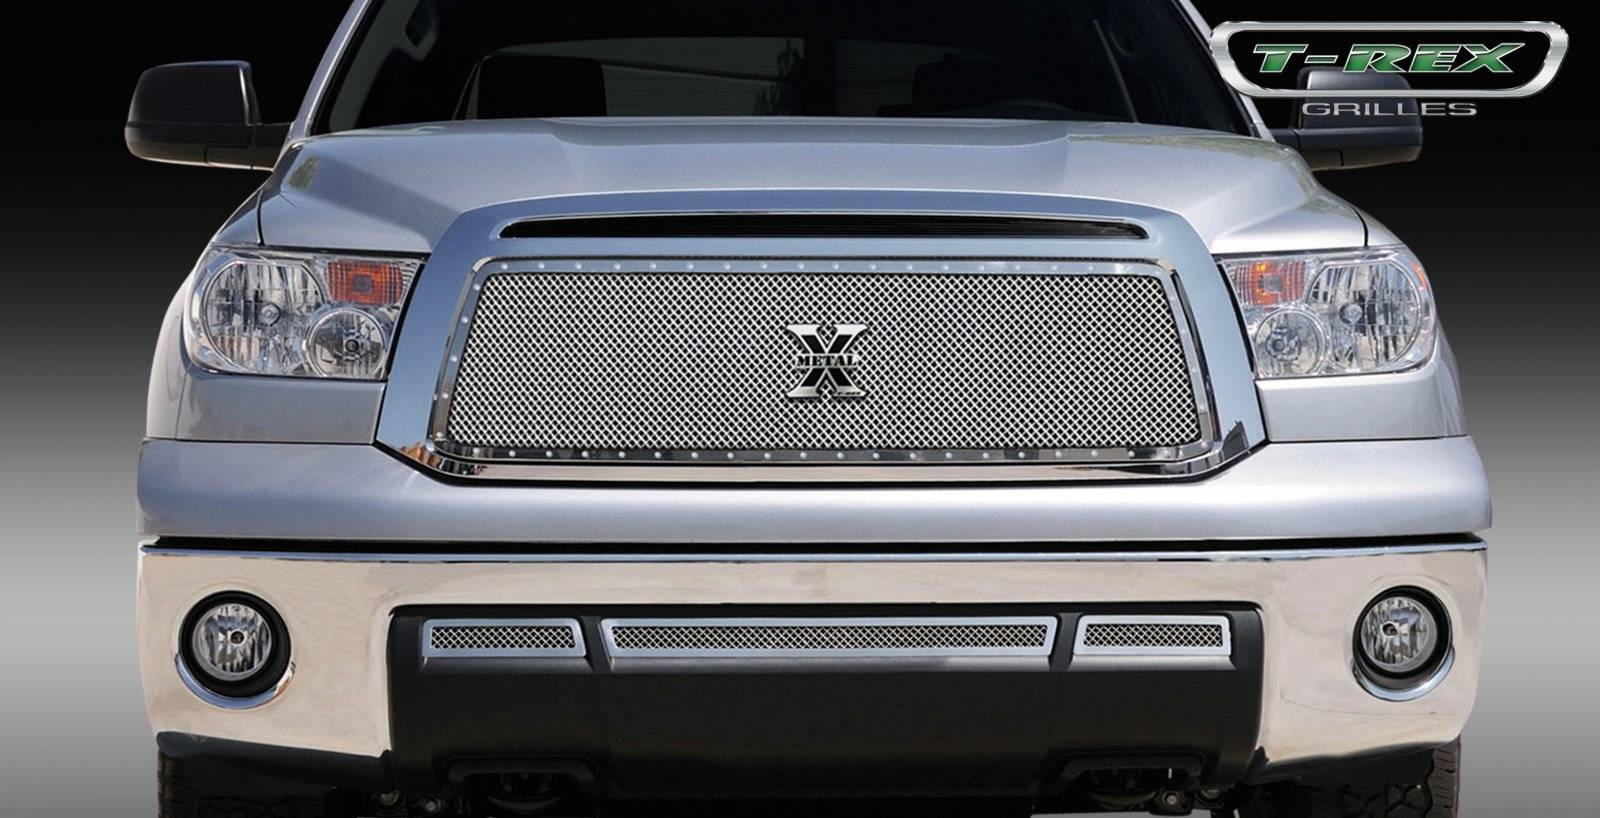 T-REX Grilles - 2010-2013 Tundra X-Metal Grille, Polished, 1 Pc, Insert, Chrome Studs - PN #6719630